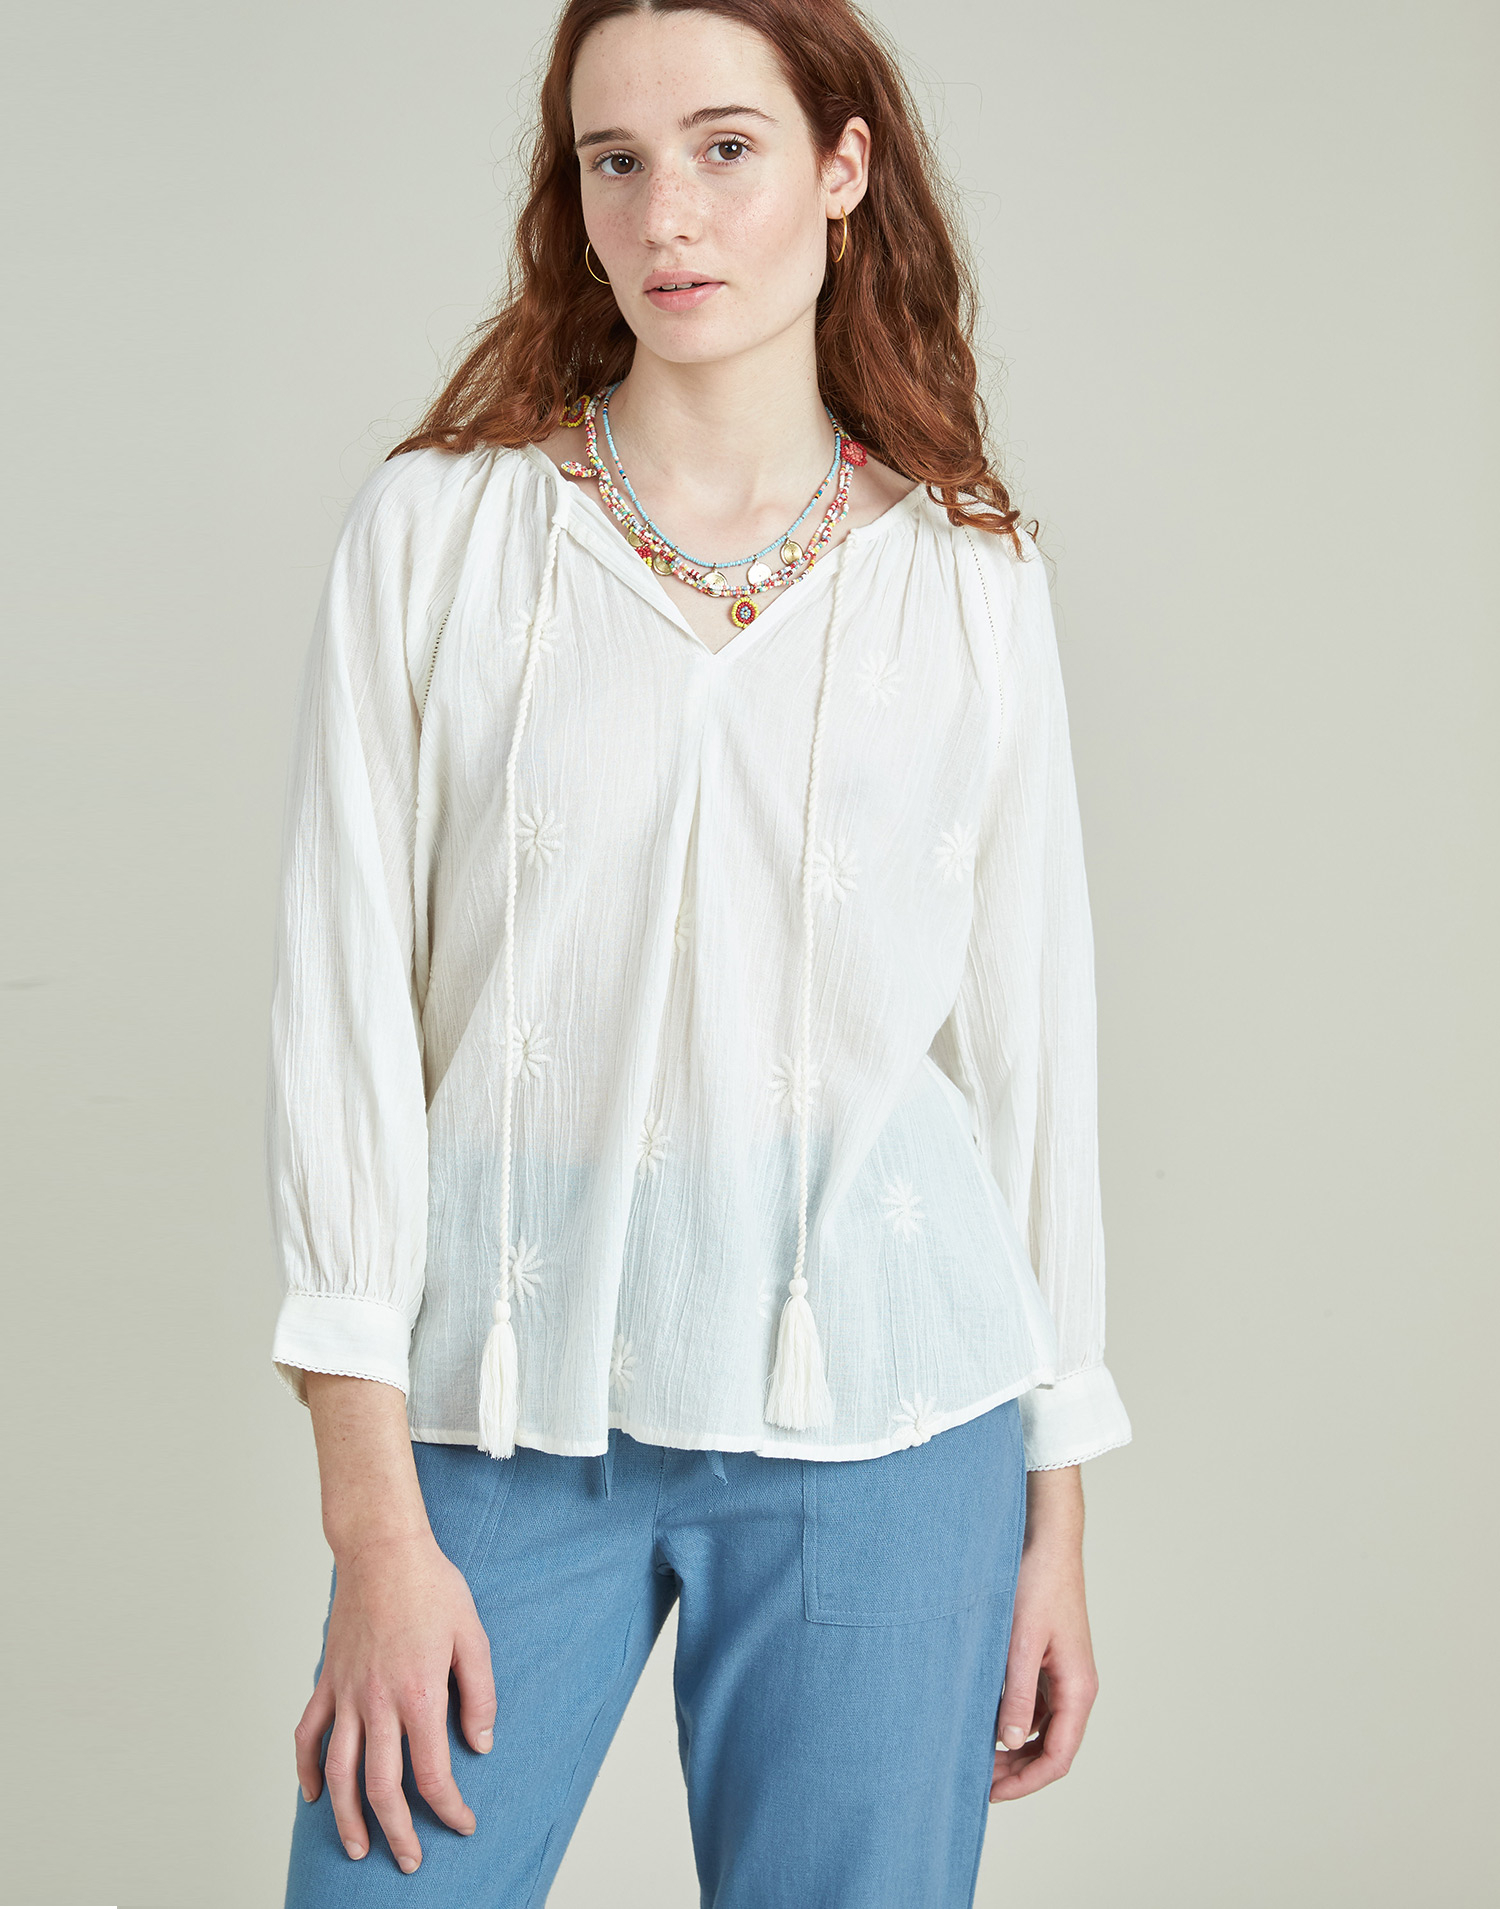 Embroidered blouse with pompoms